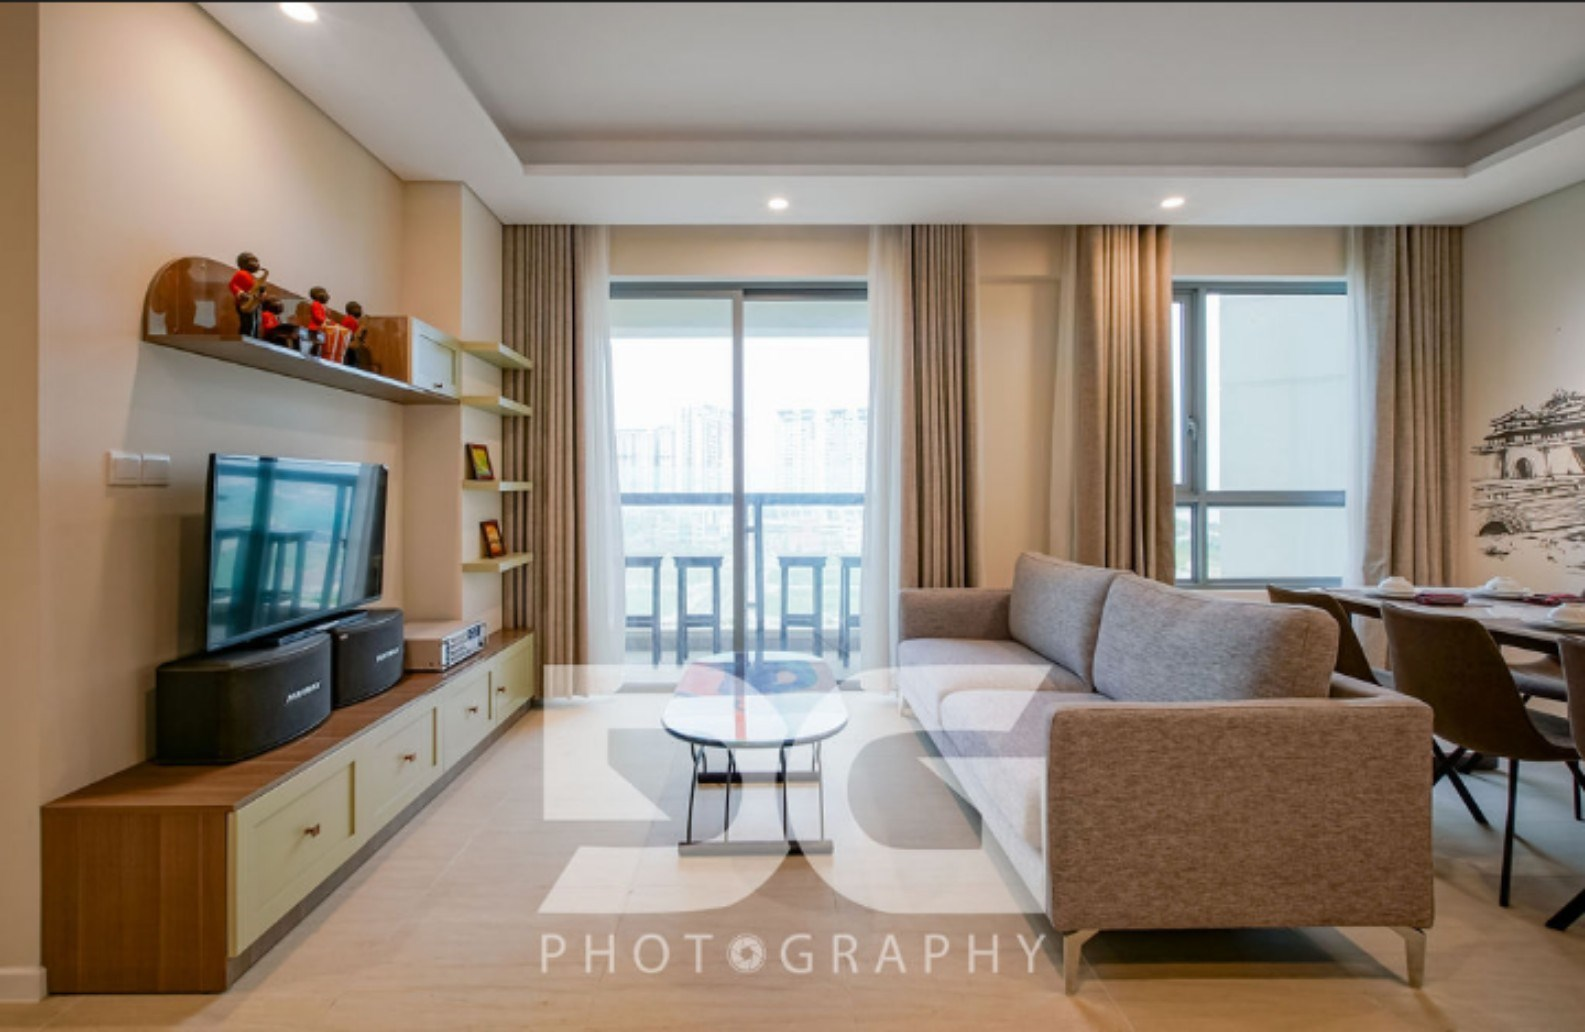 DI0223 - Diamond Island Apartment For Rent & Sale in Ho Chi Minh City - 2 bedroom